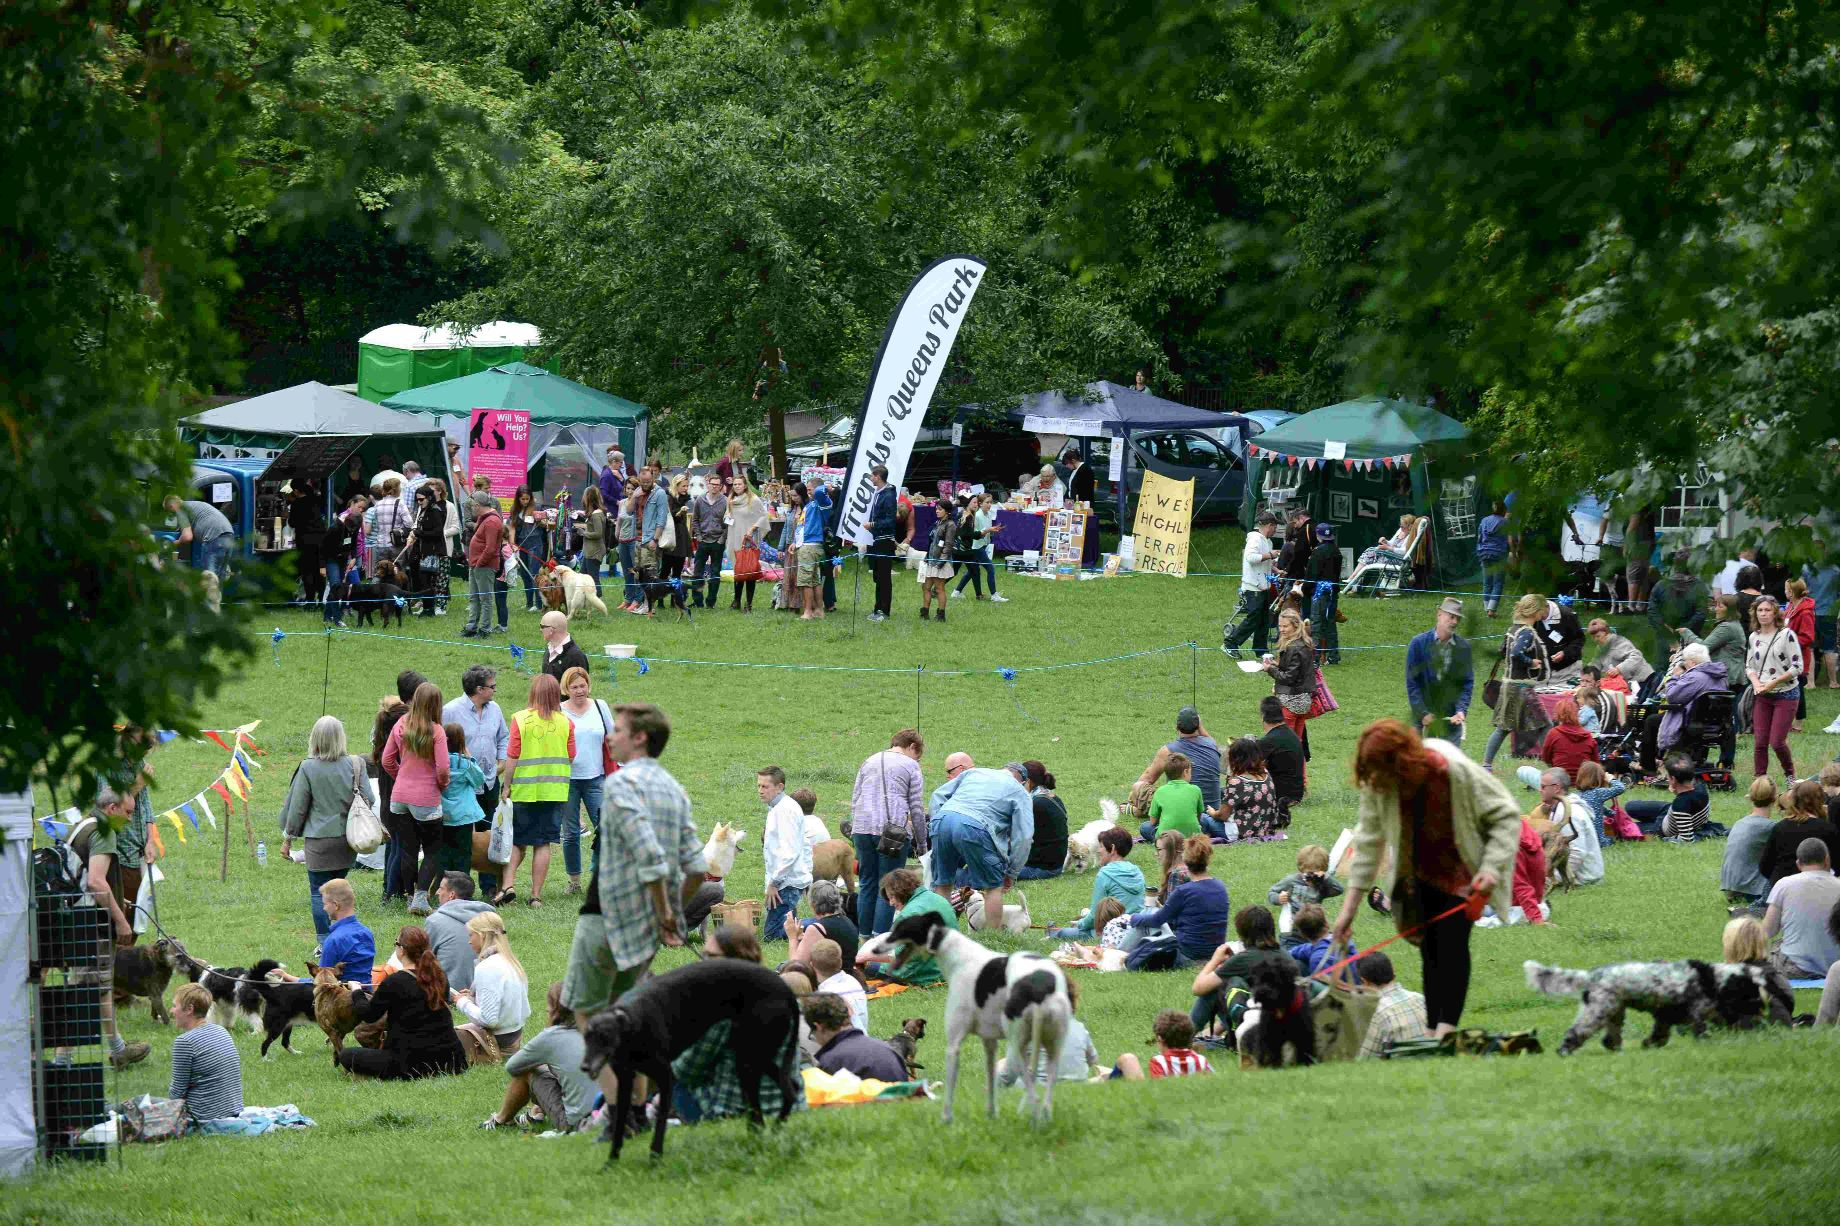 Waggy tails at fun dog show